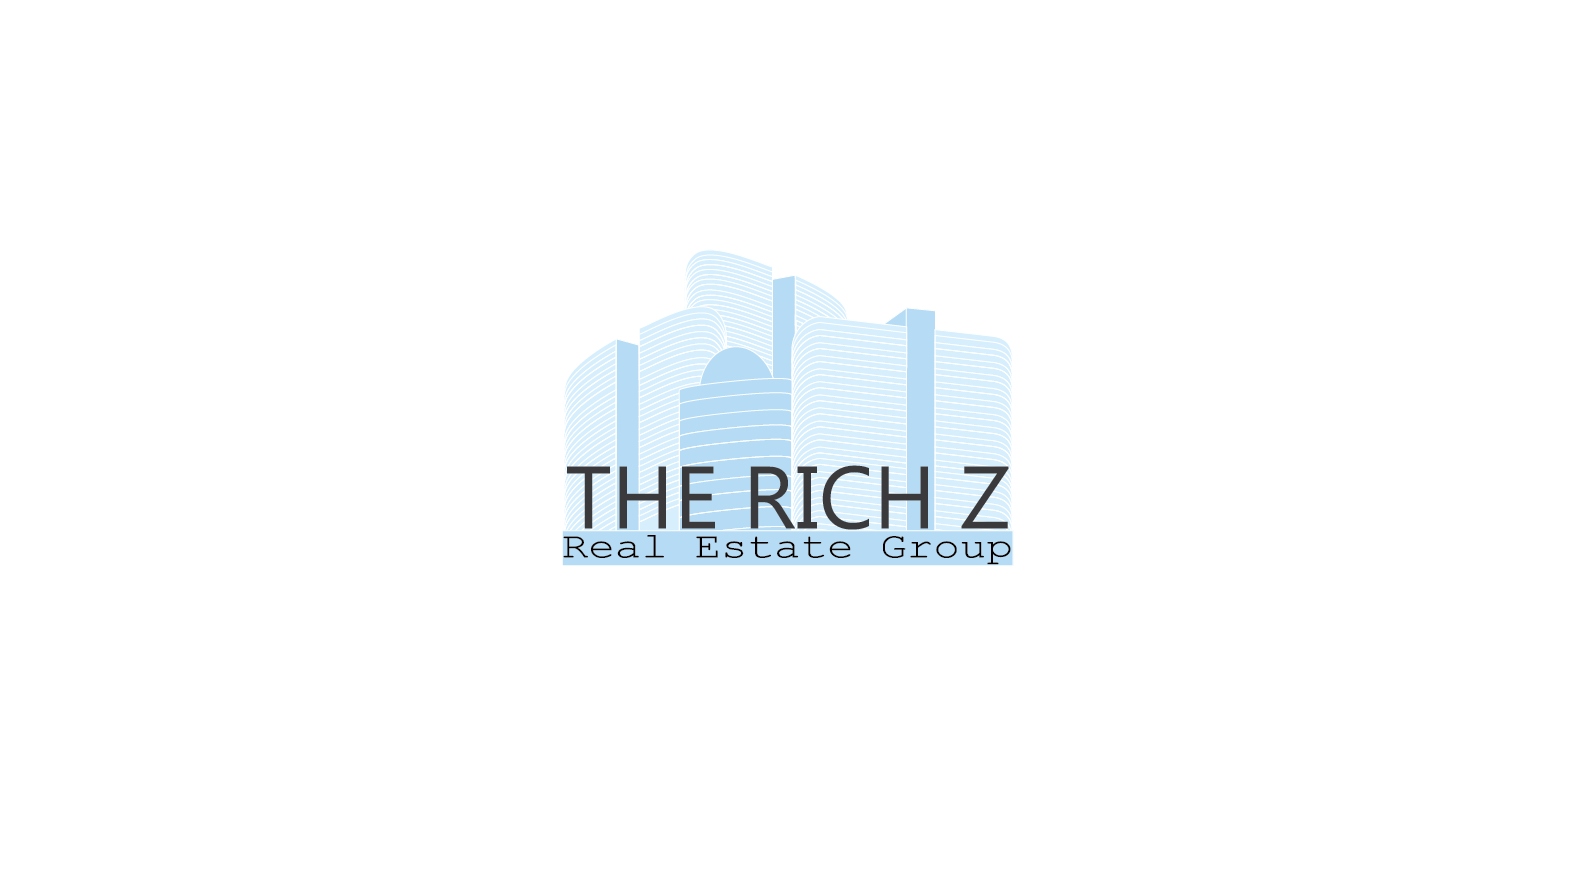 Logo Design by Private User - Entry No. 372 in the Logo Design Contest The Rich Z. Real Estate Group Logo Design.